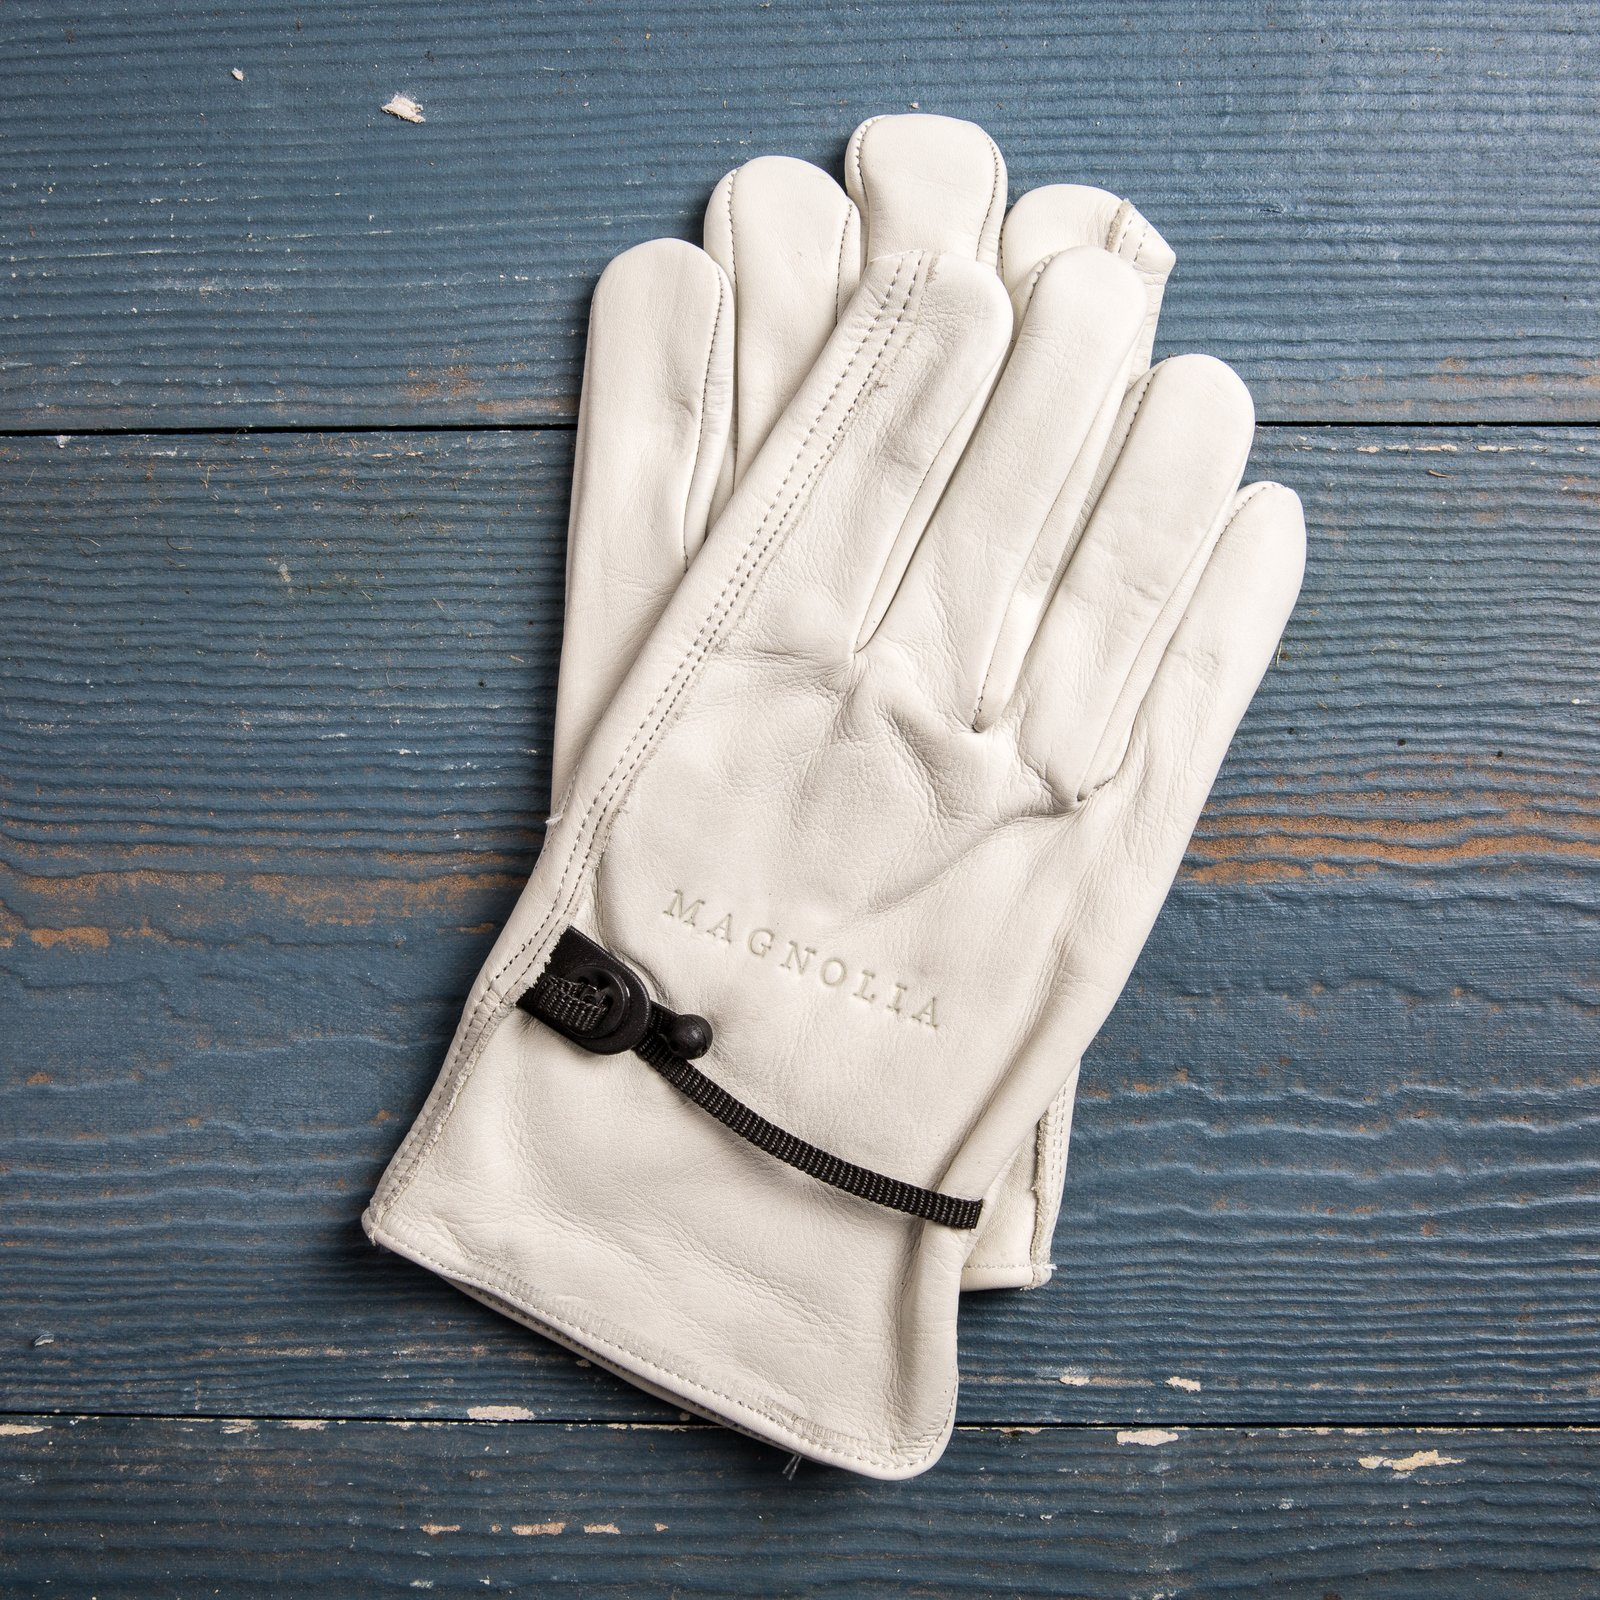 Magnolia gloves